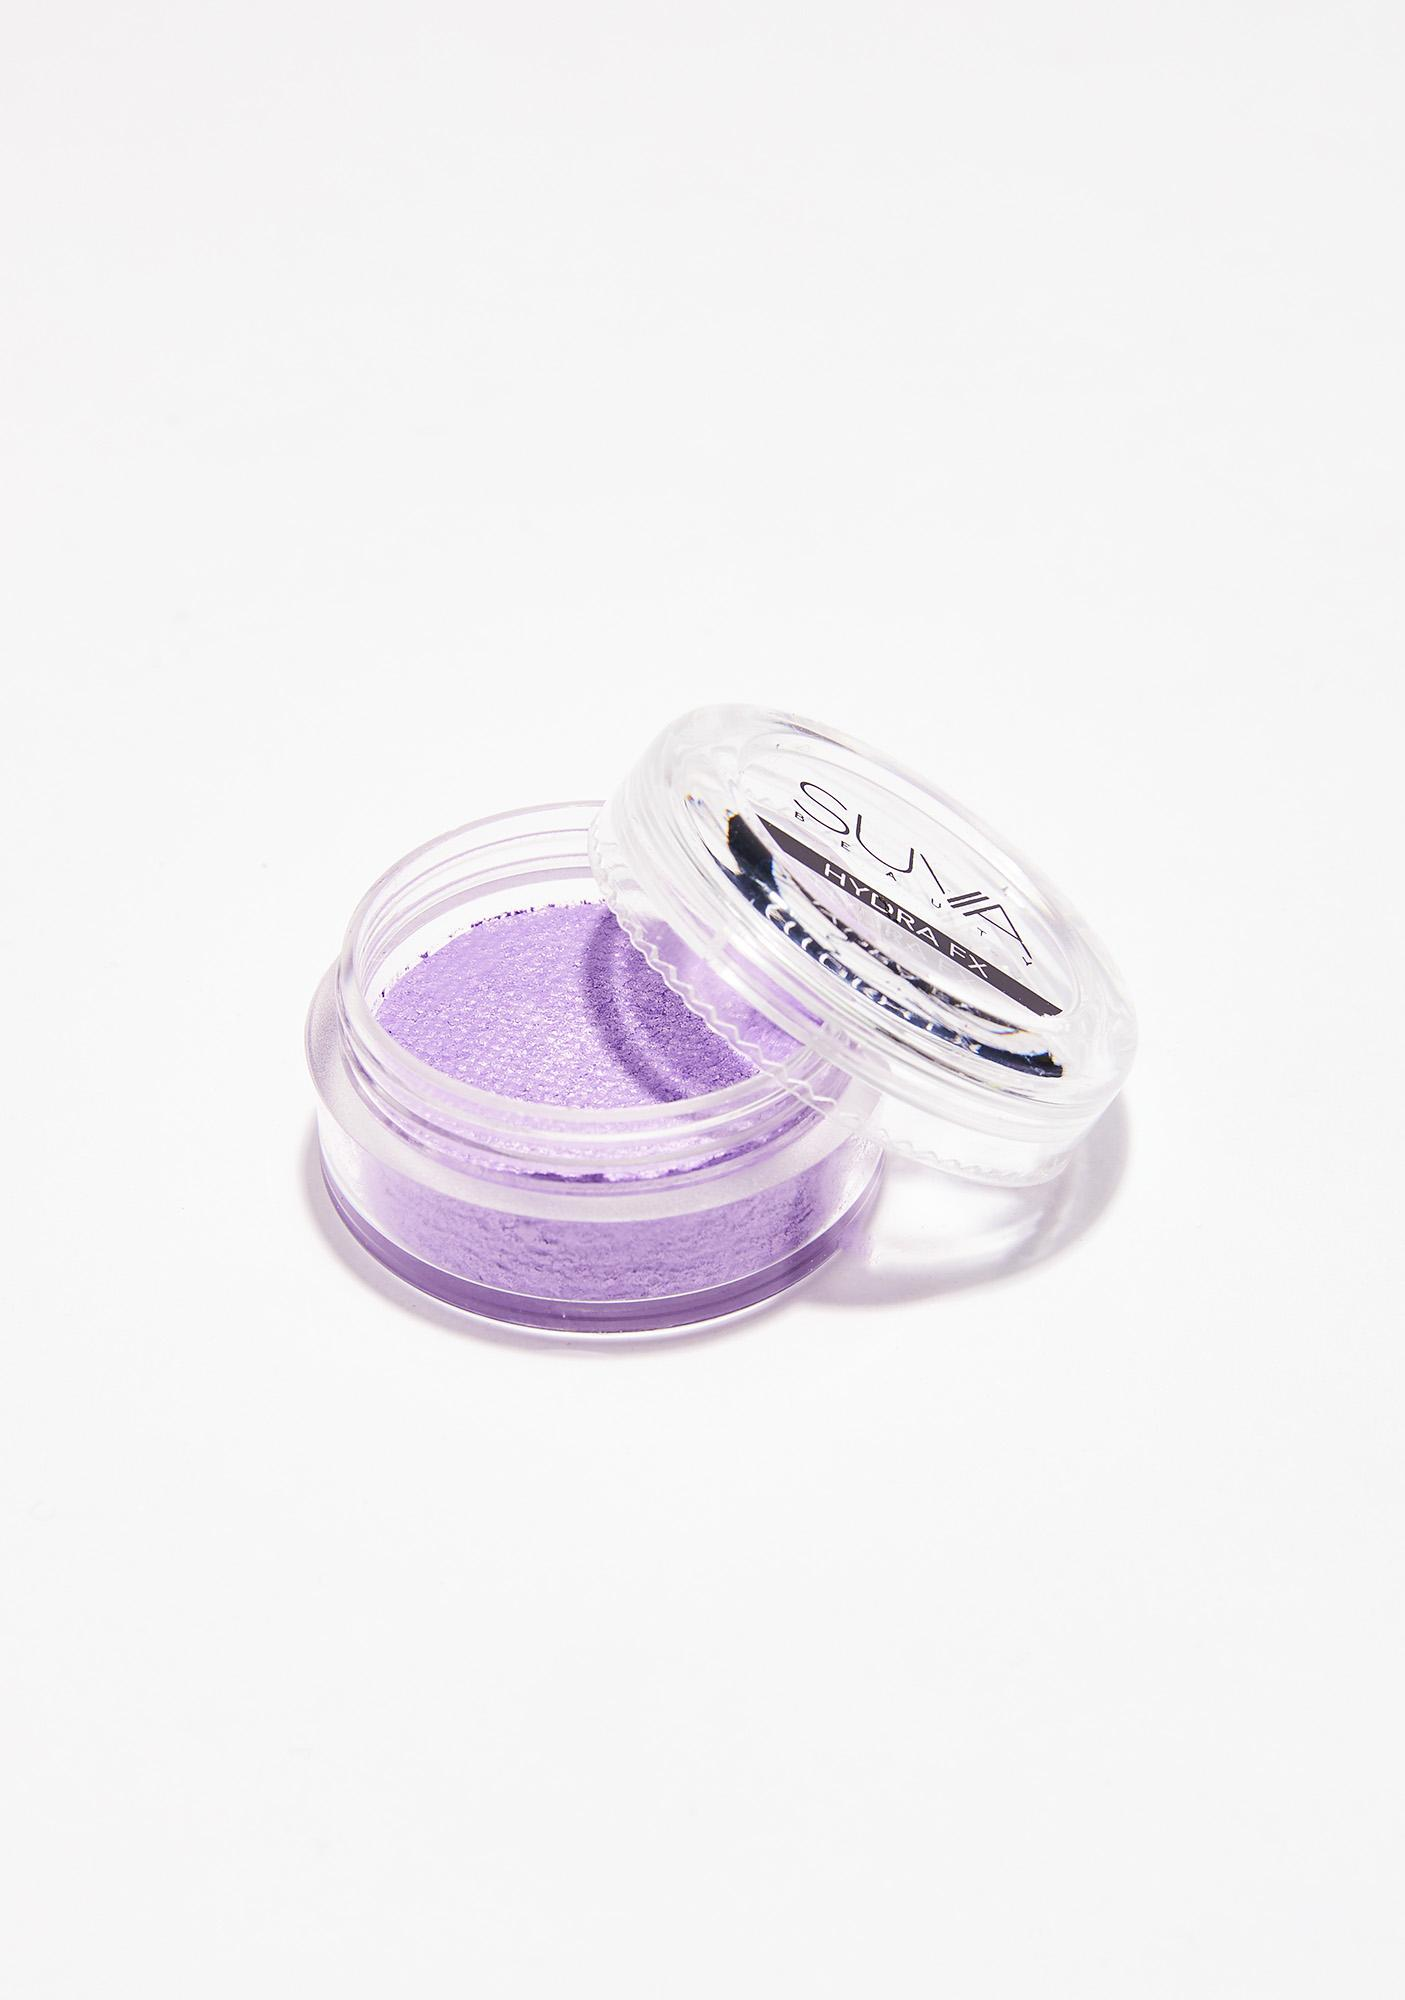 SUVA Beauty Lustre Lilac Chrome Hydra FX